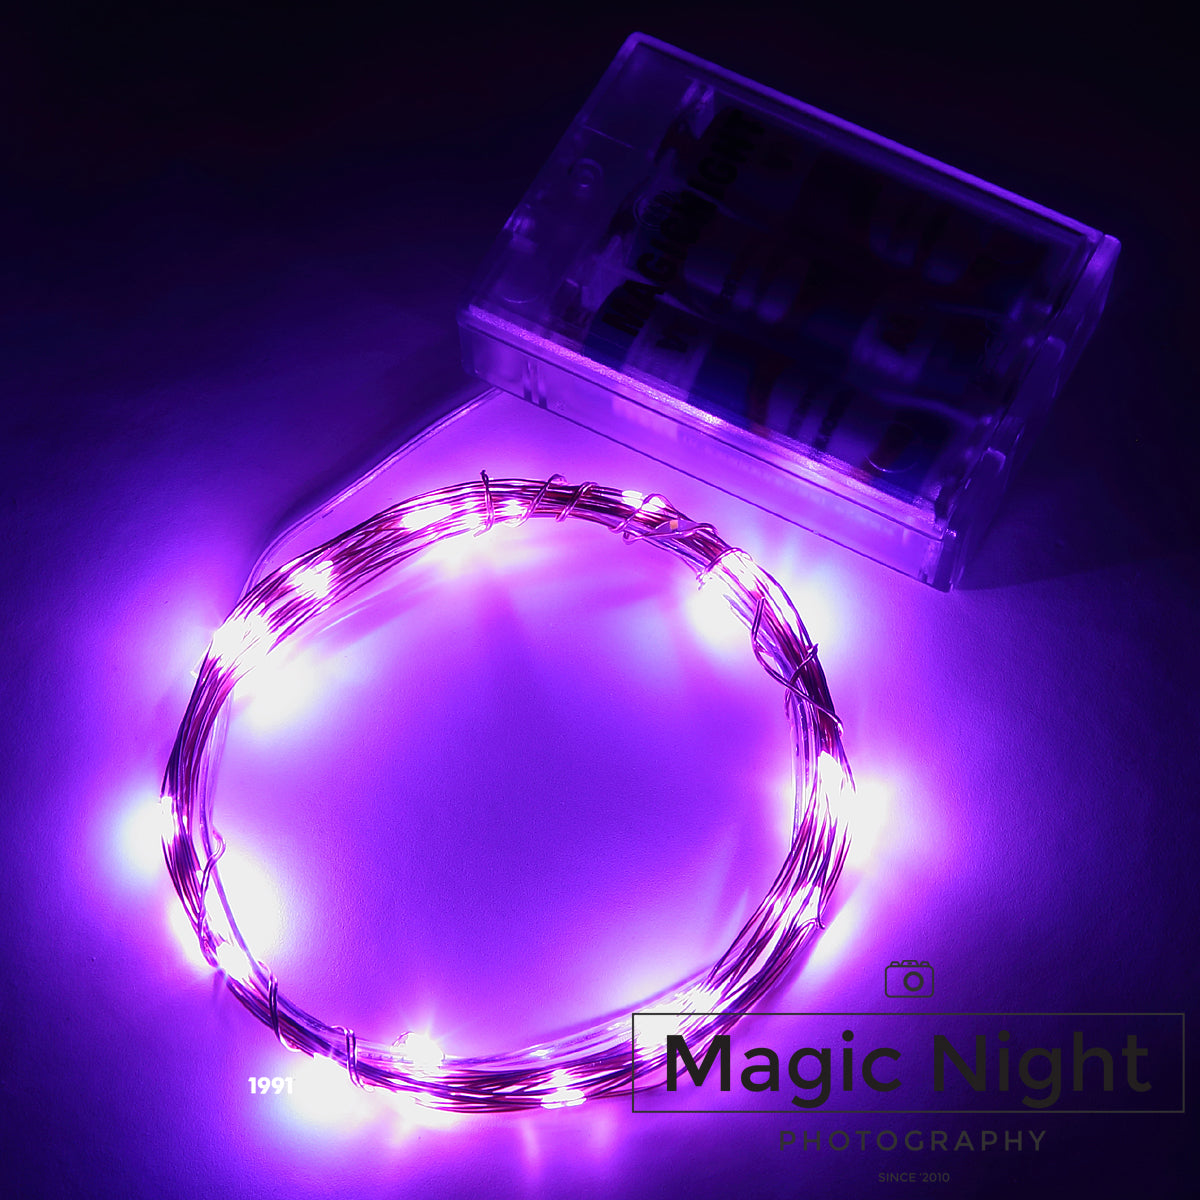 Magicnight battery powered operated led string starry light 30 magicnight battery powered operated led string starry light 30 leds aloadofball Image collections